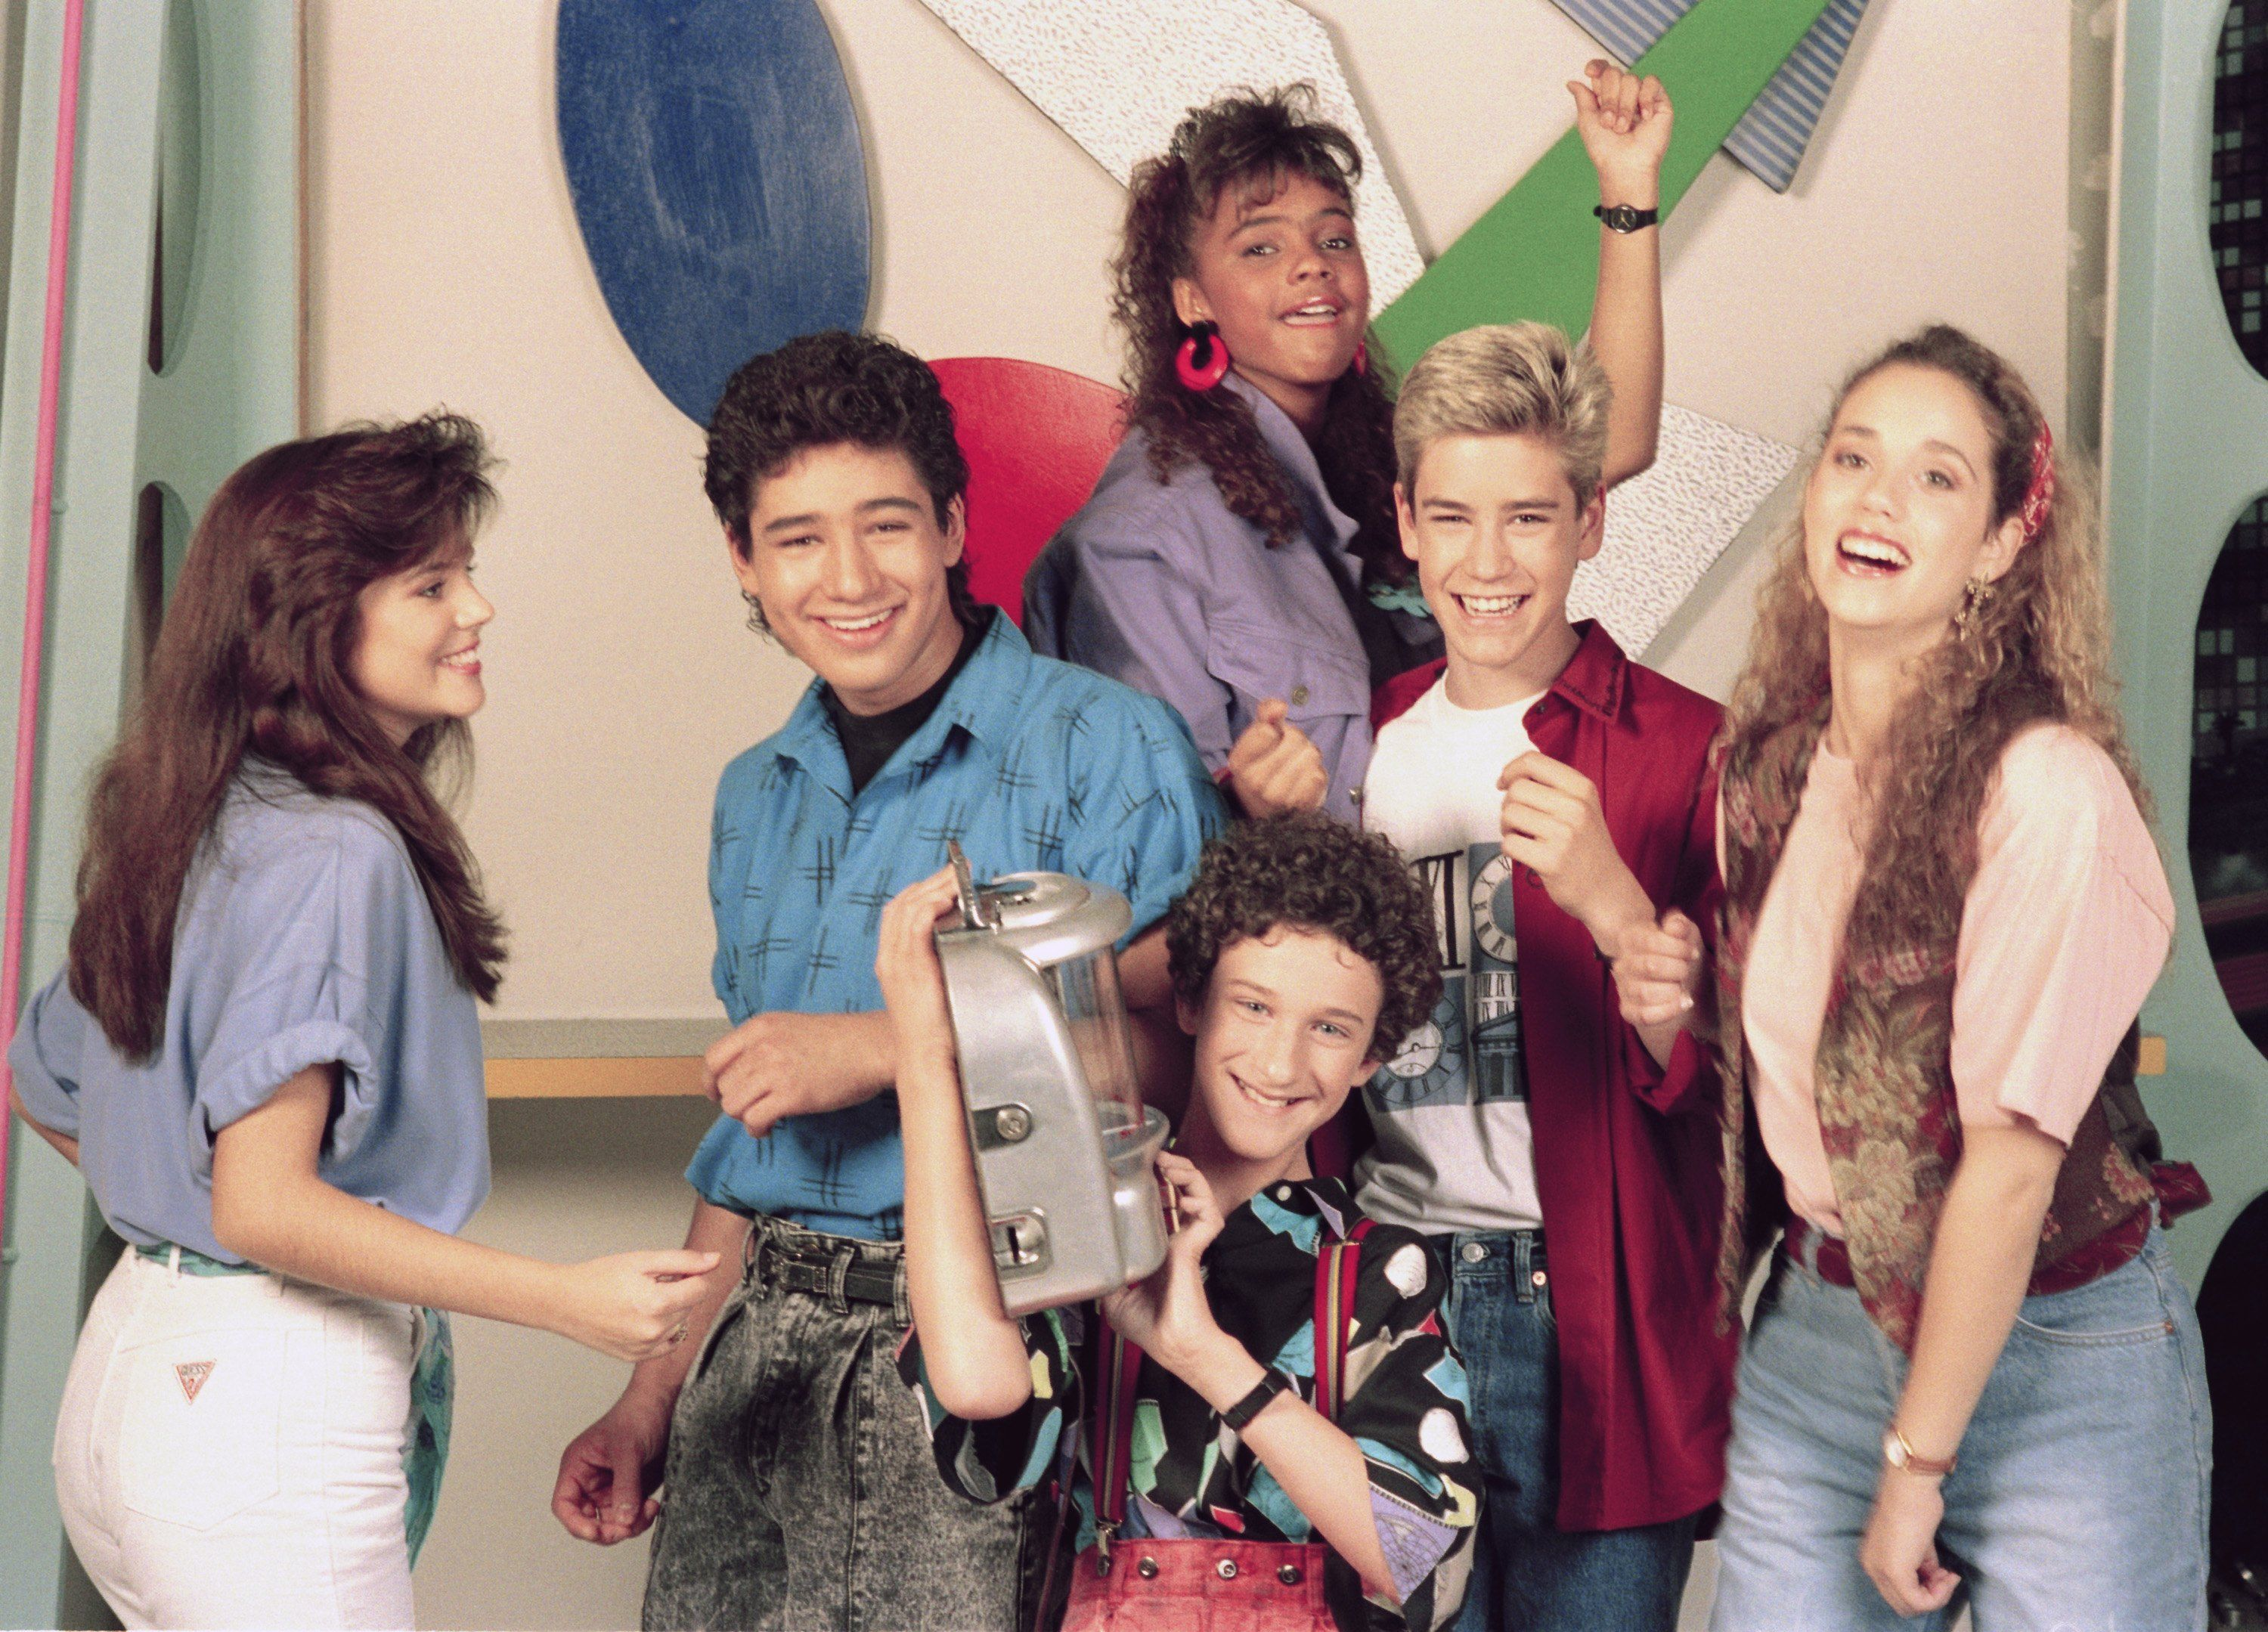 The Silly, Scheming, Millennial-Defining 'Saved by the Bell' Turns 30